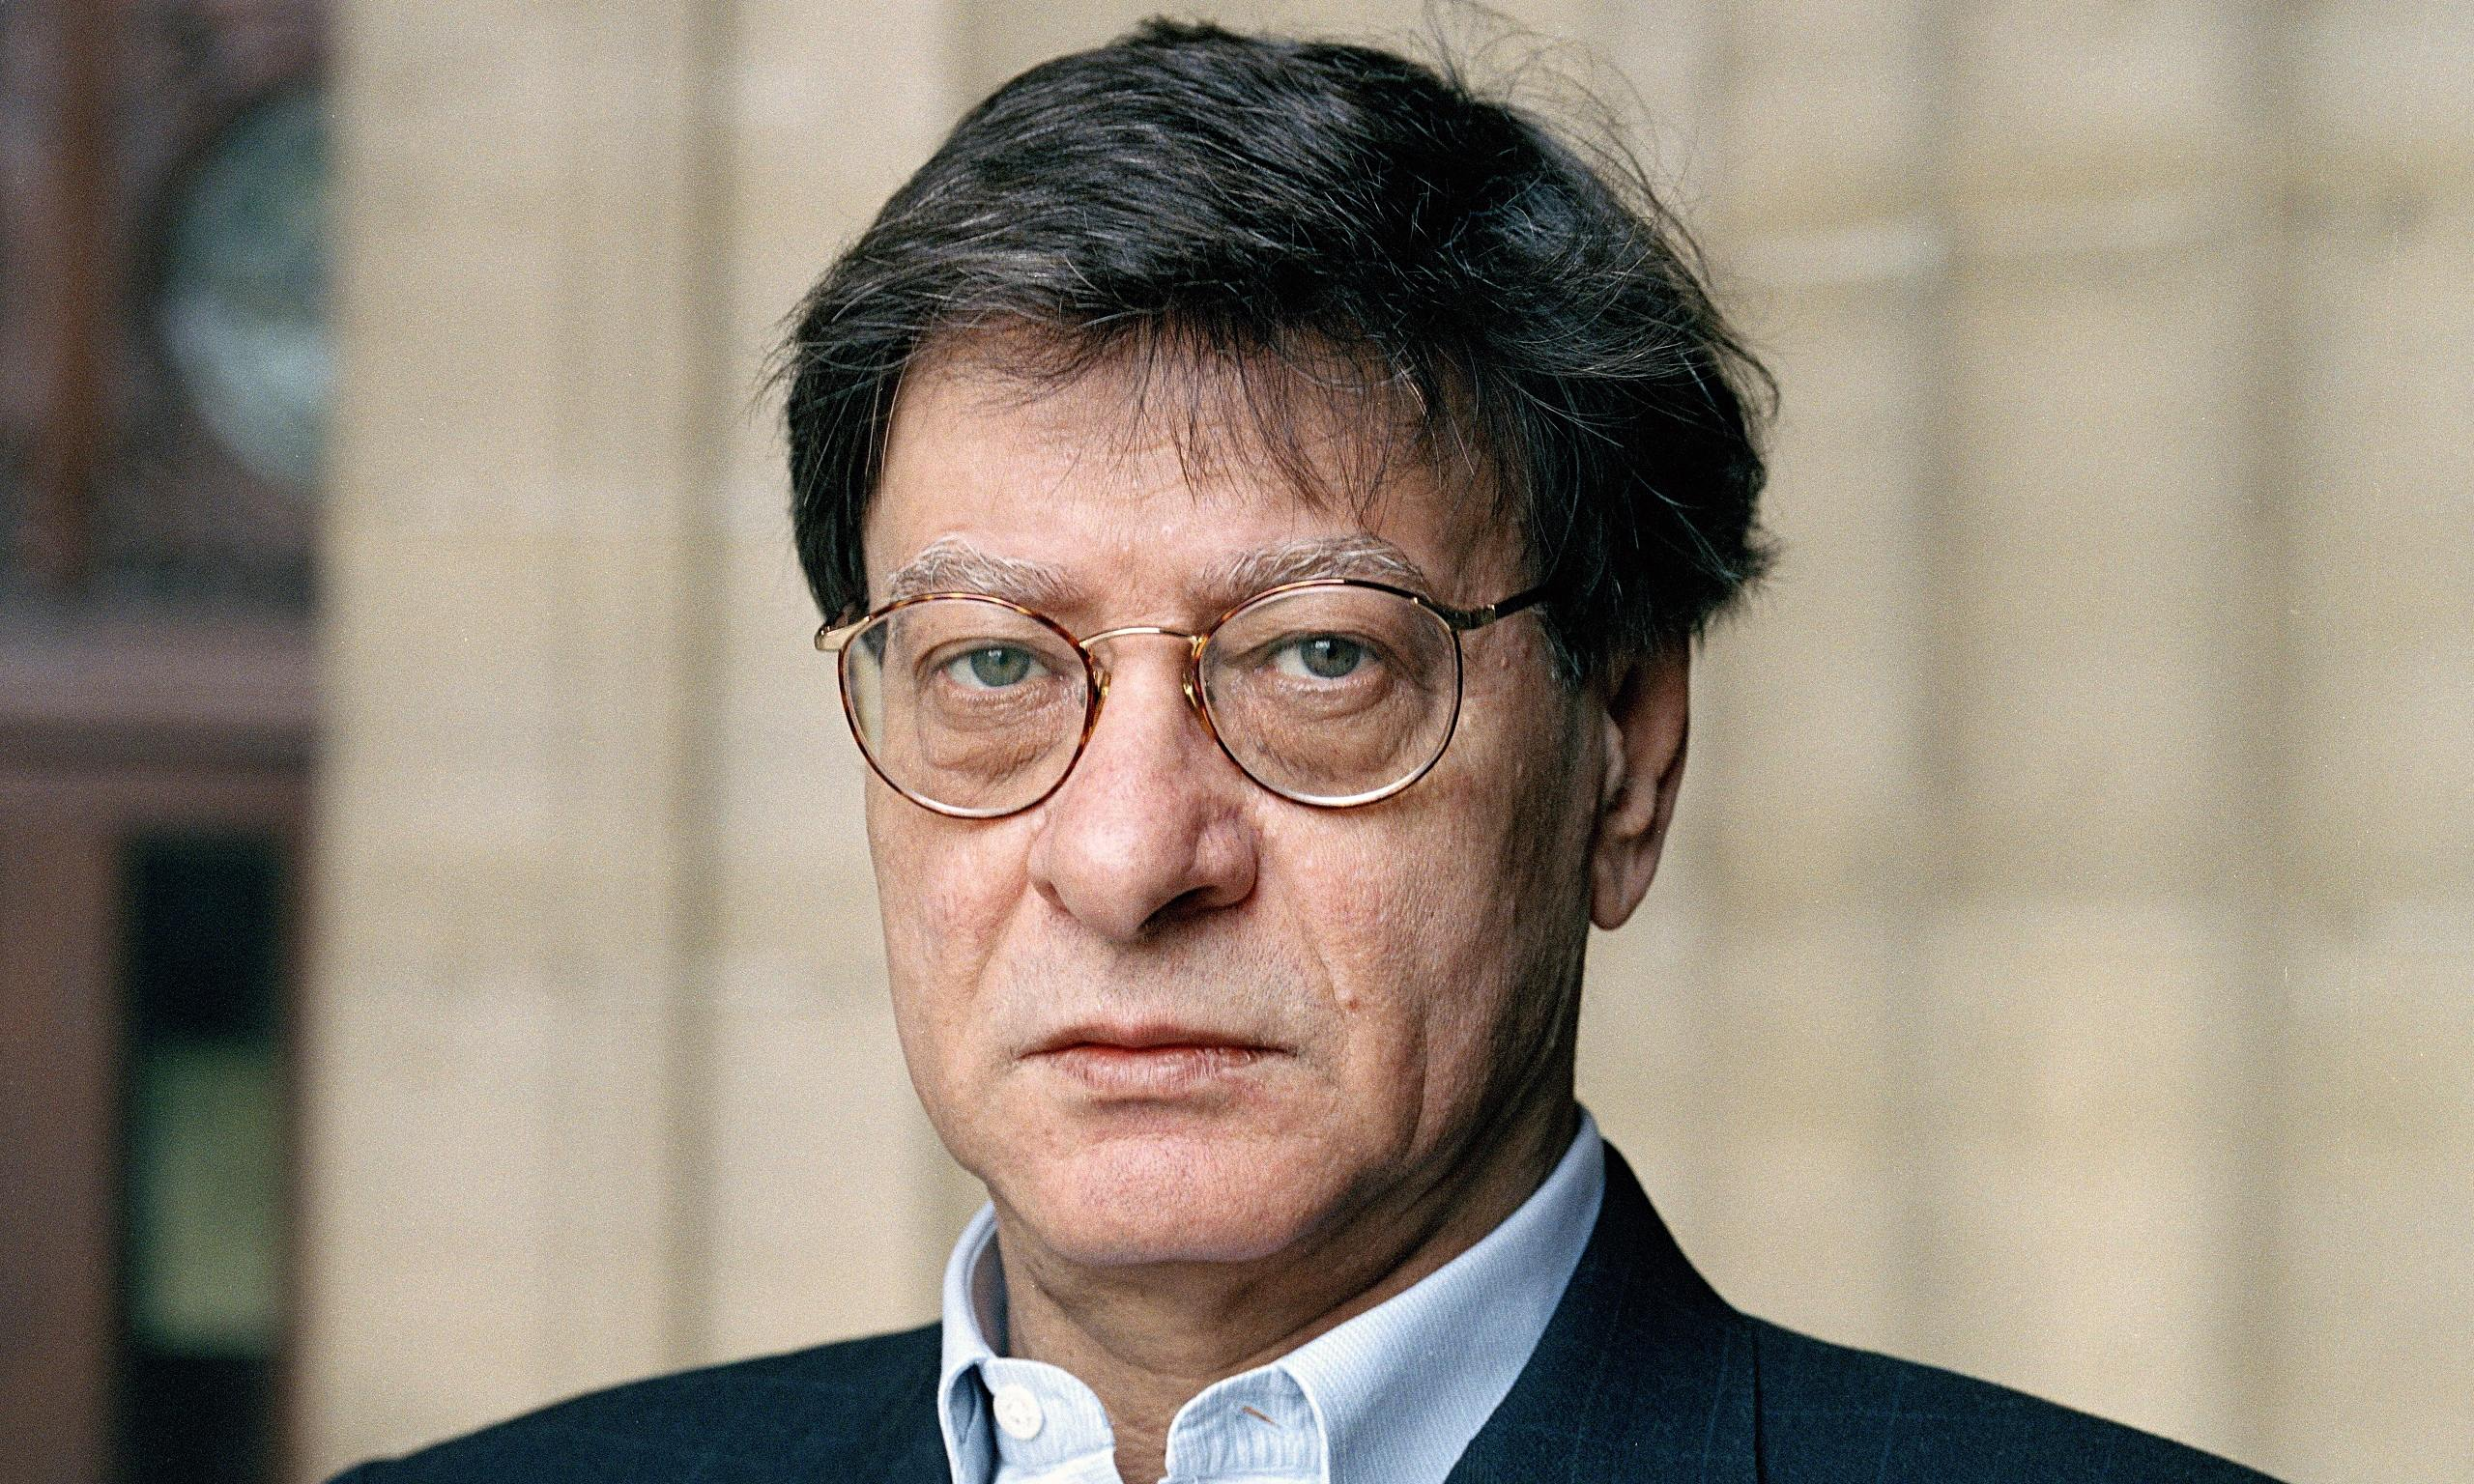 Saudi book fair bans 'blasphemous' Mahmoud Darwish works after protest